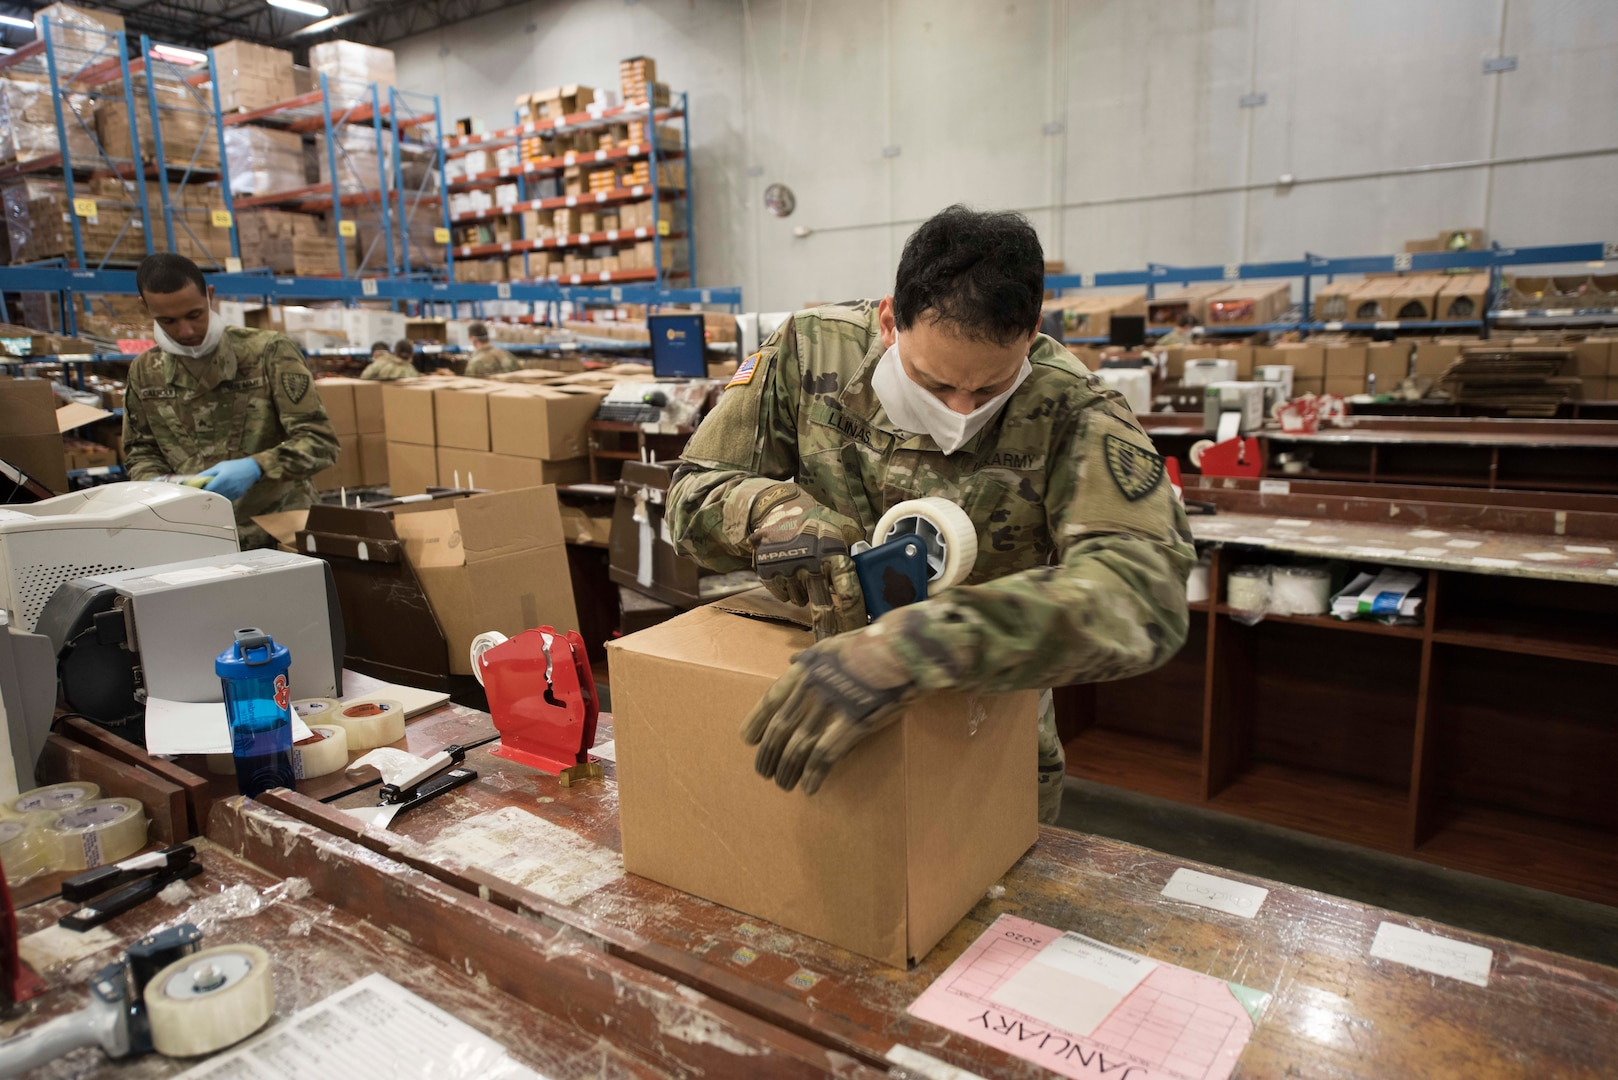 An Indiana National Guard Soldier from the 38th Sustainment Brigade packs commissary orders for Indiana offenders at the Plainfield Correctional Facility, Plainfield, Indiana, April 14, 2020.